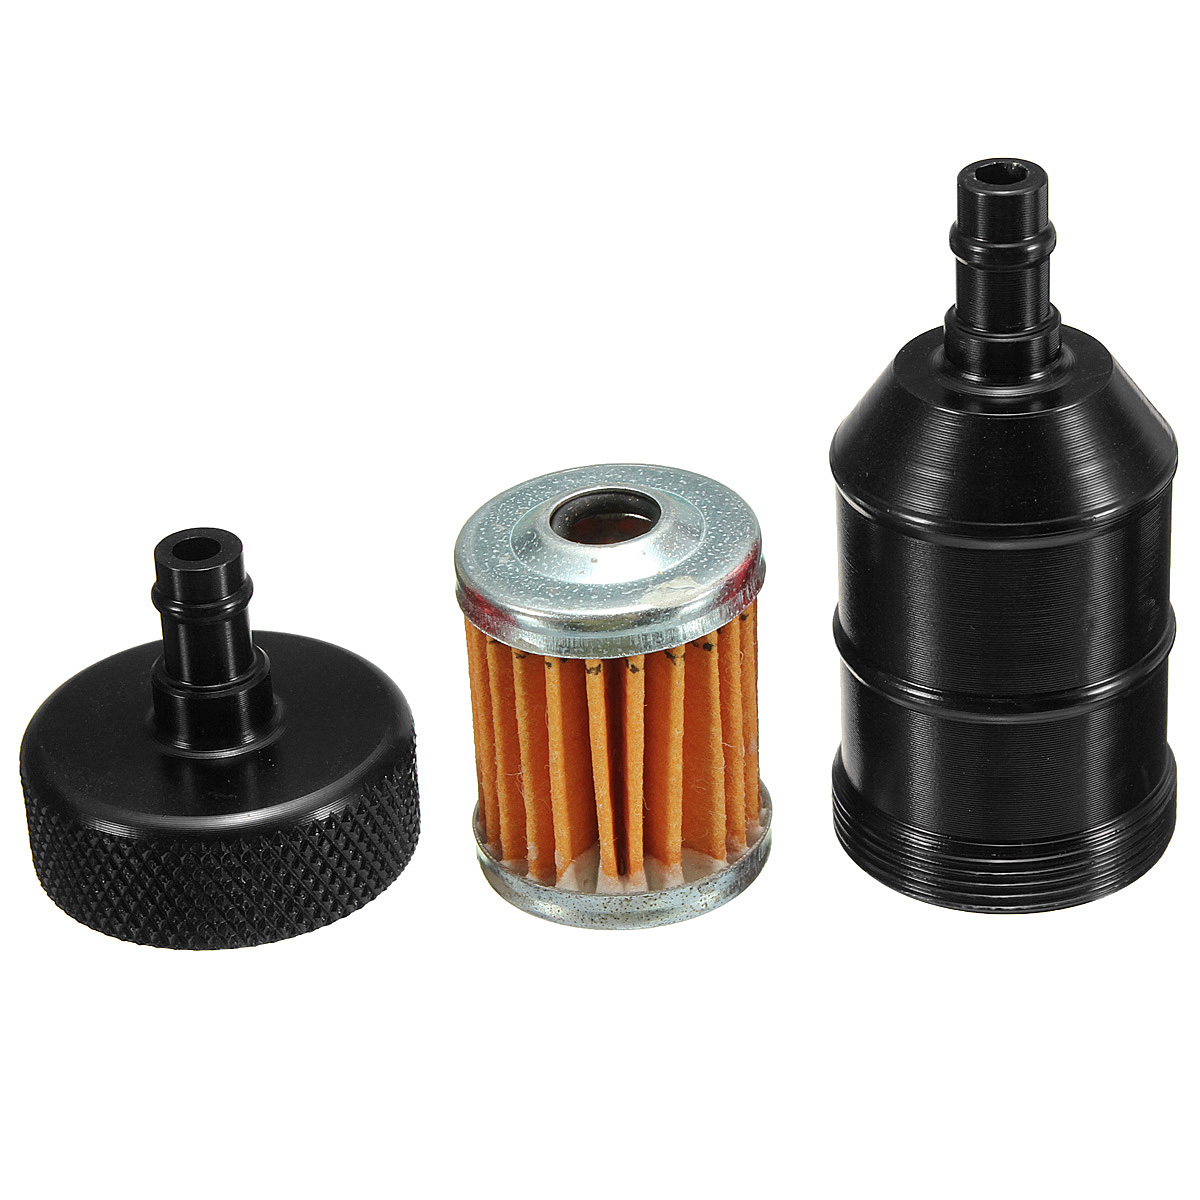 Gas Fuel Filter Auto Electrical Wiring Diagram Motorcycle Aluminum Reusable Universal Petrol